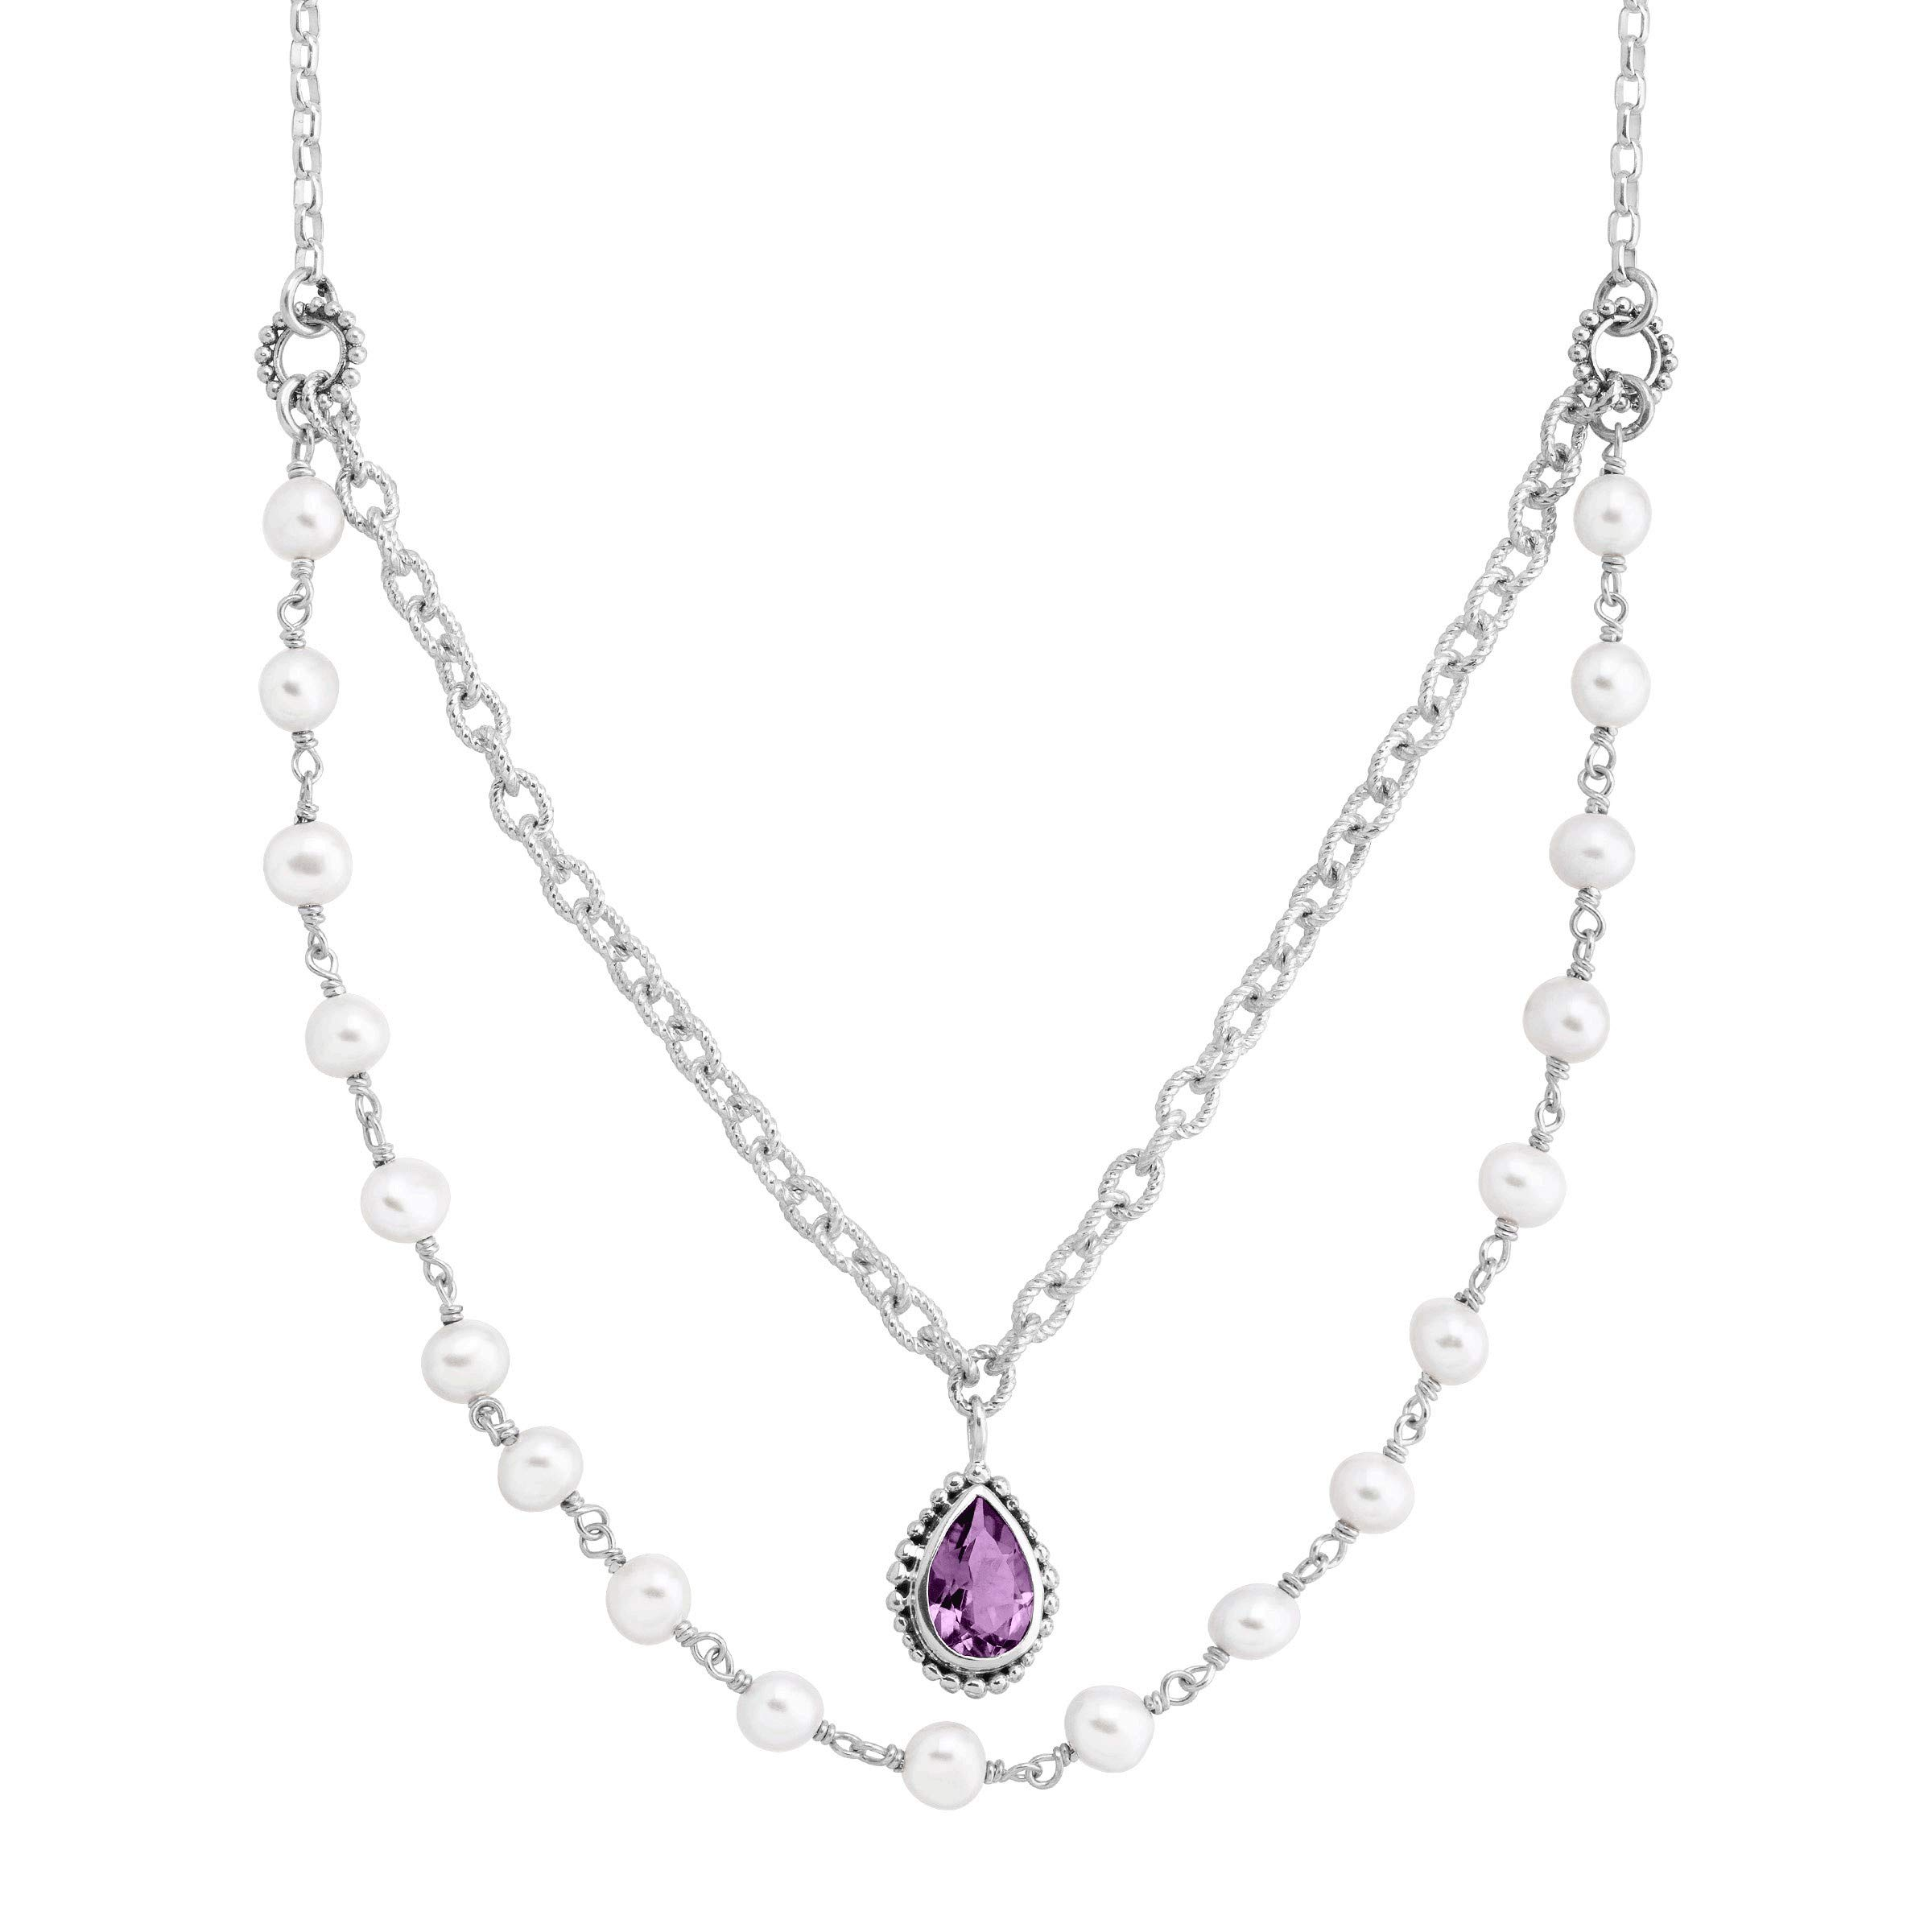 Silpada 'Sunset' Natural Amethyst & 5-5.5 mm Freshwater Cultured Pearl Layered Necklace in Sterling Silver